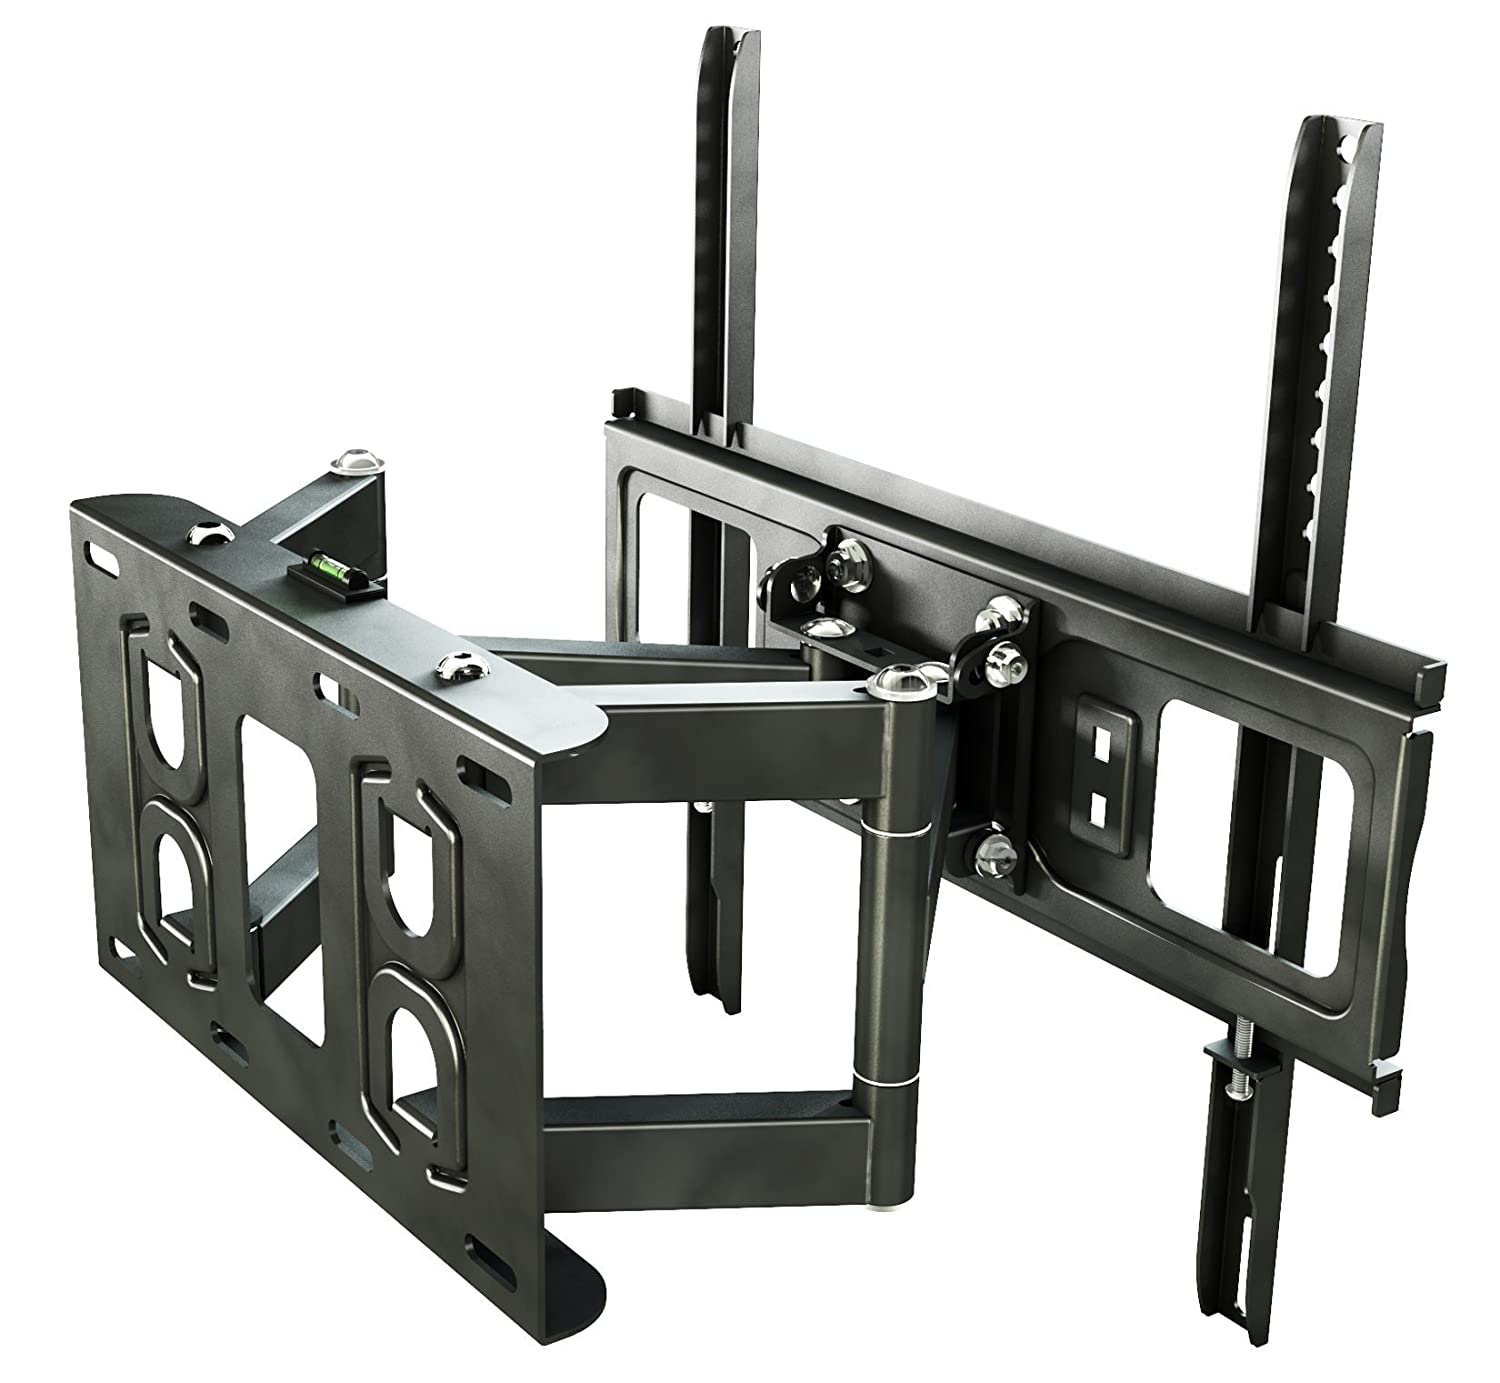 ricoo support tv mural orientable inclinable s5244 meuble de